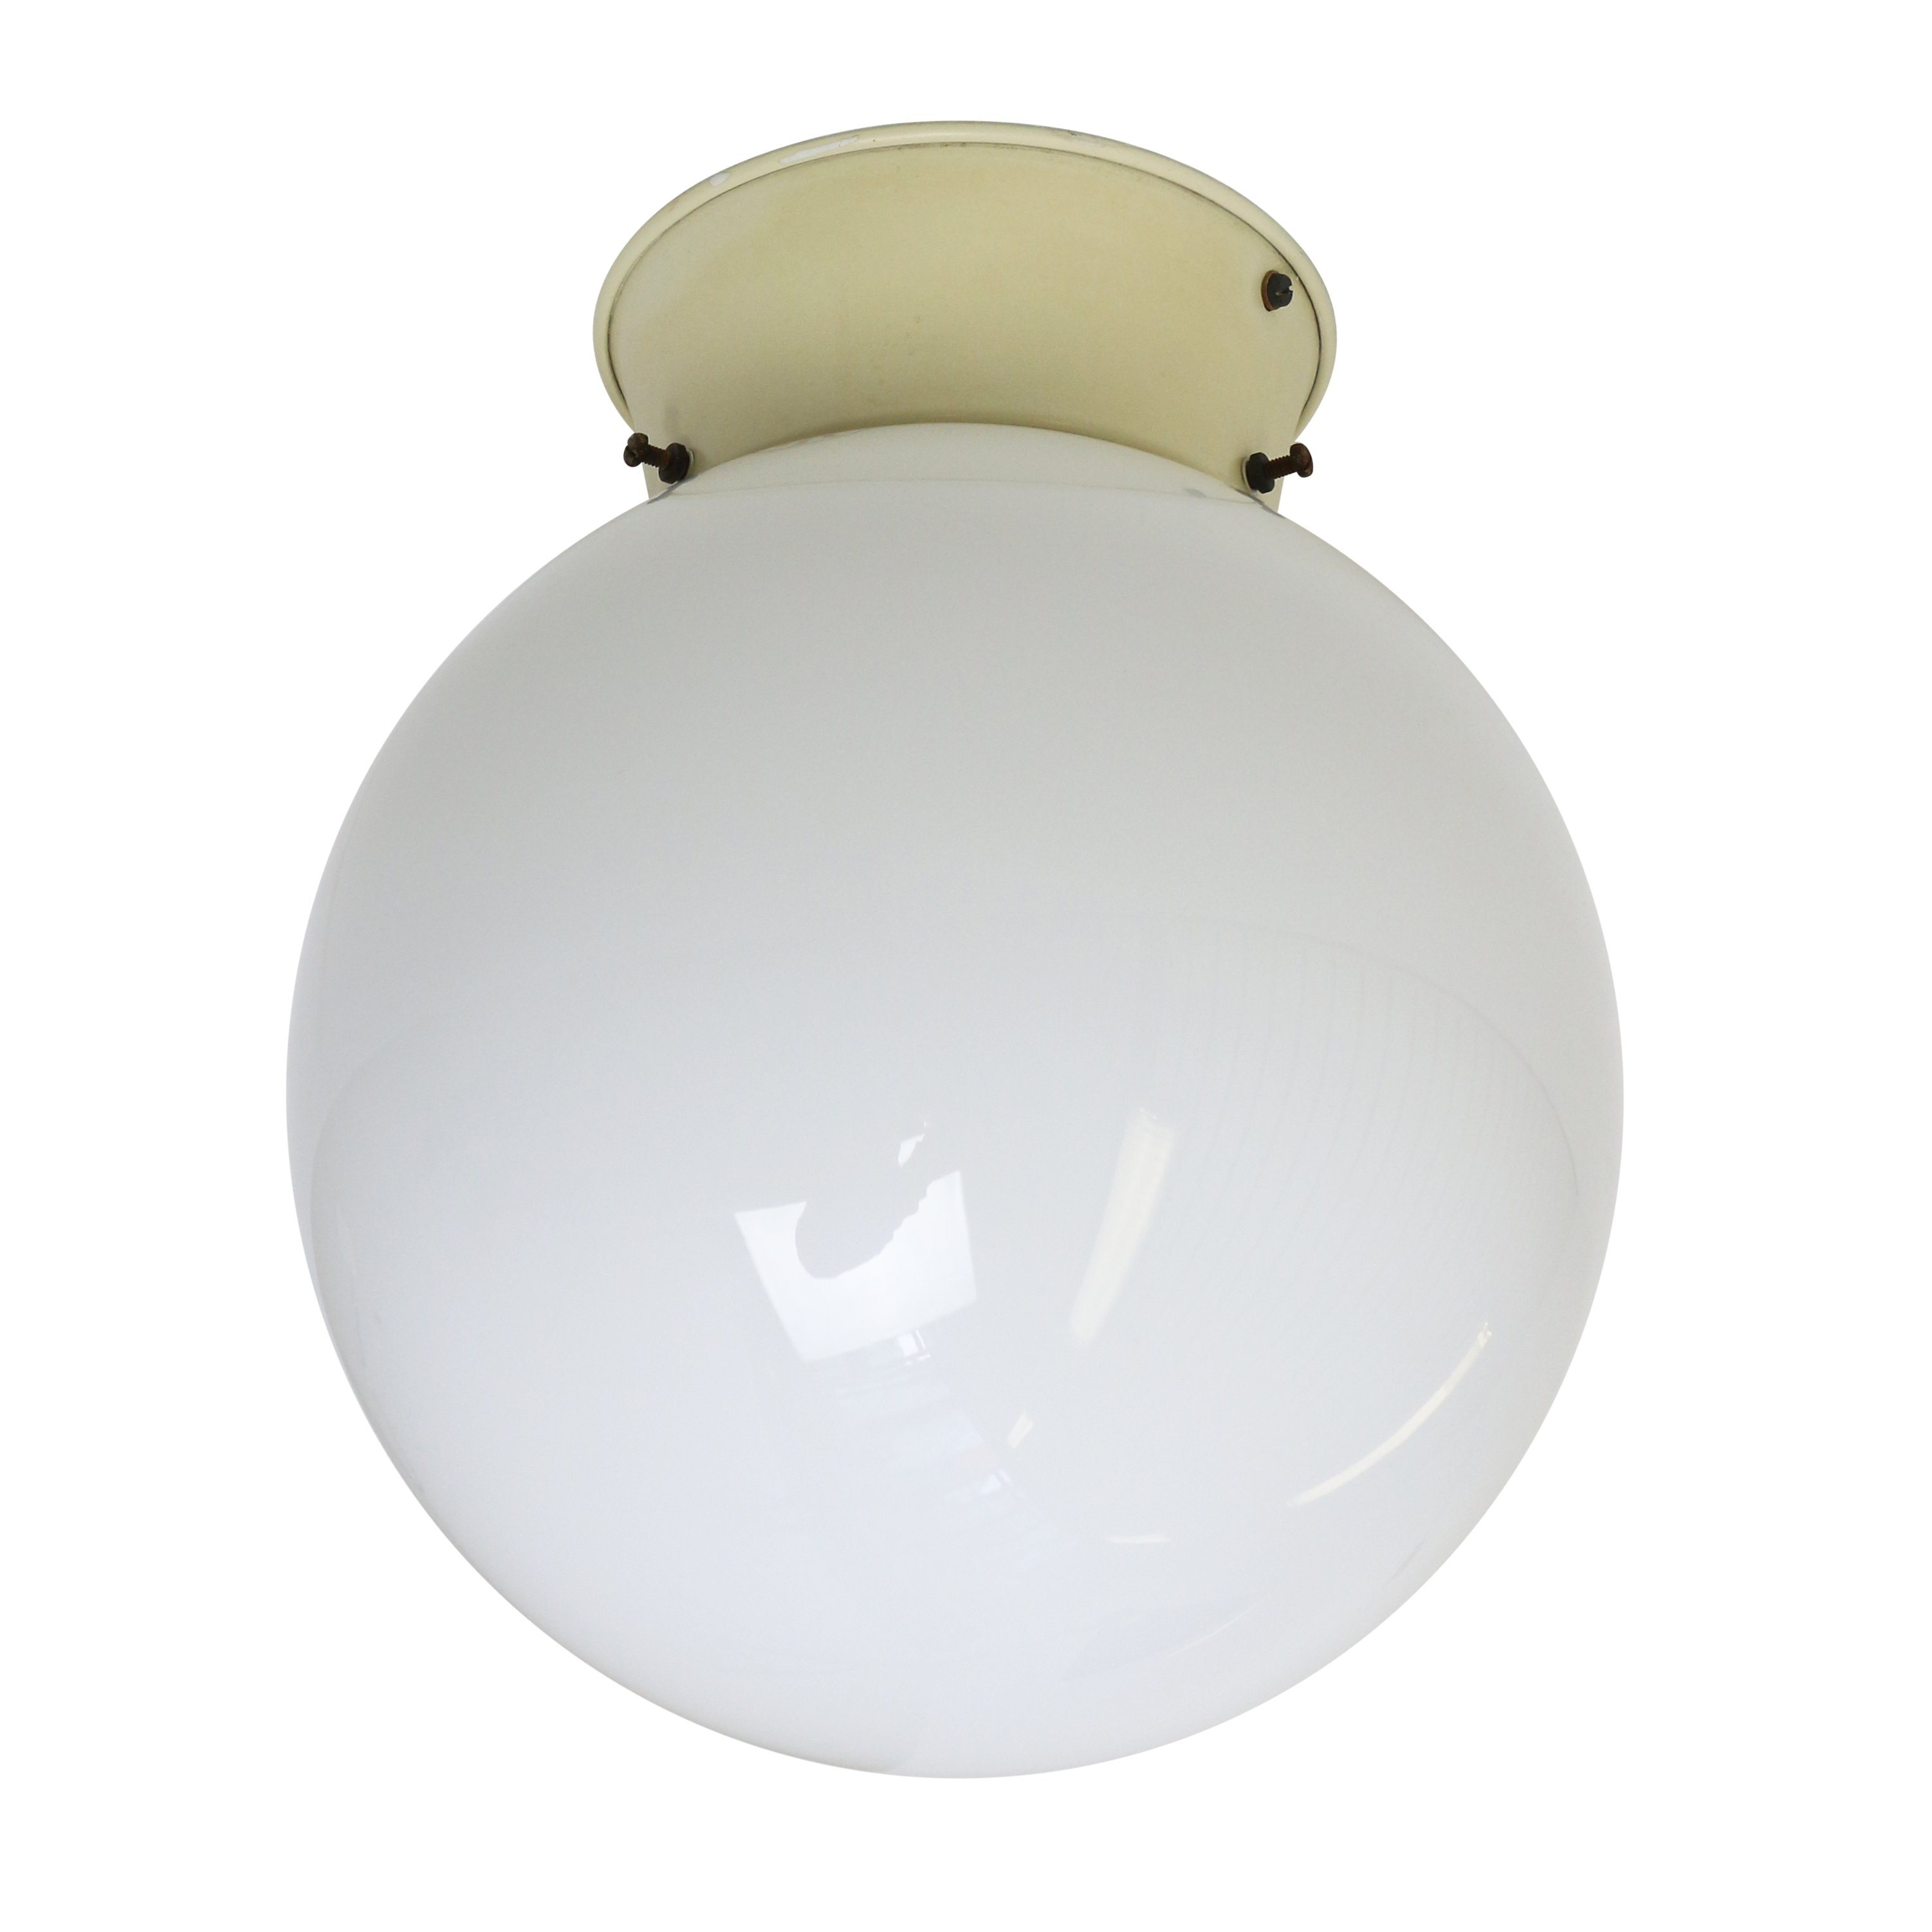 Opal Glass Globe Ceiling Light 1930s 1207